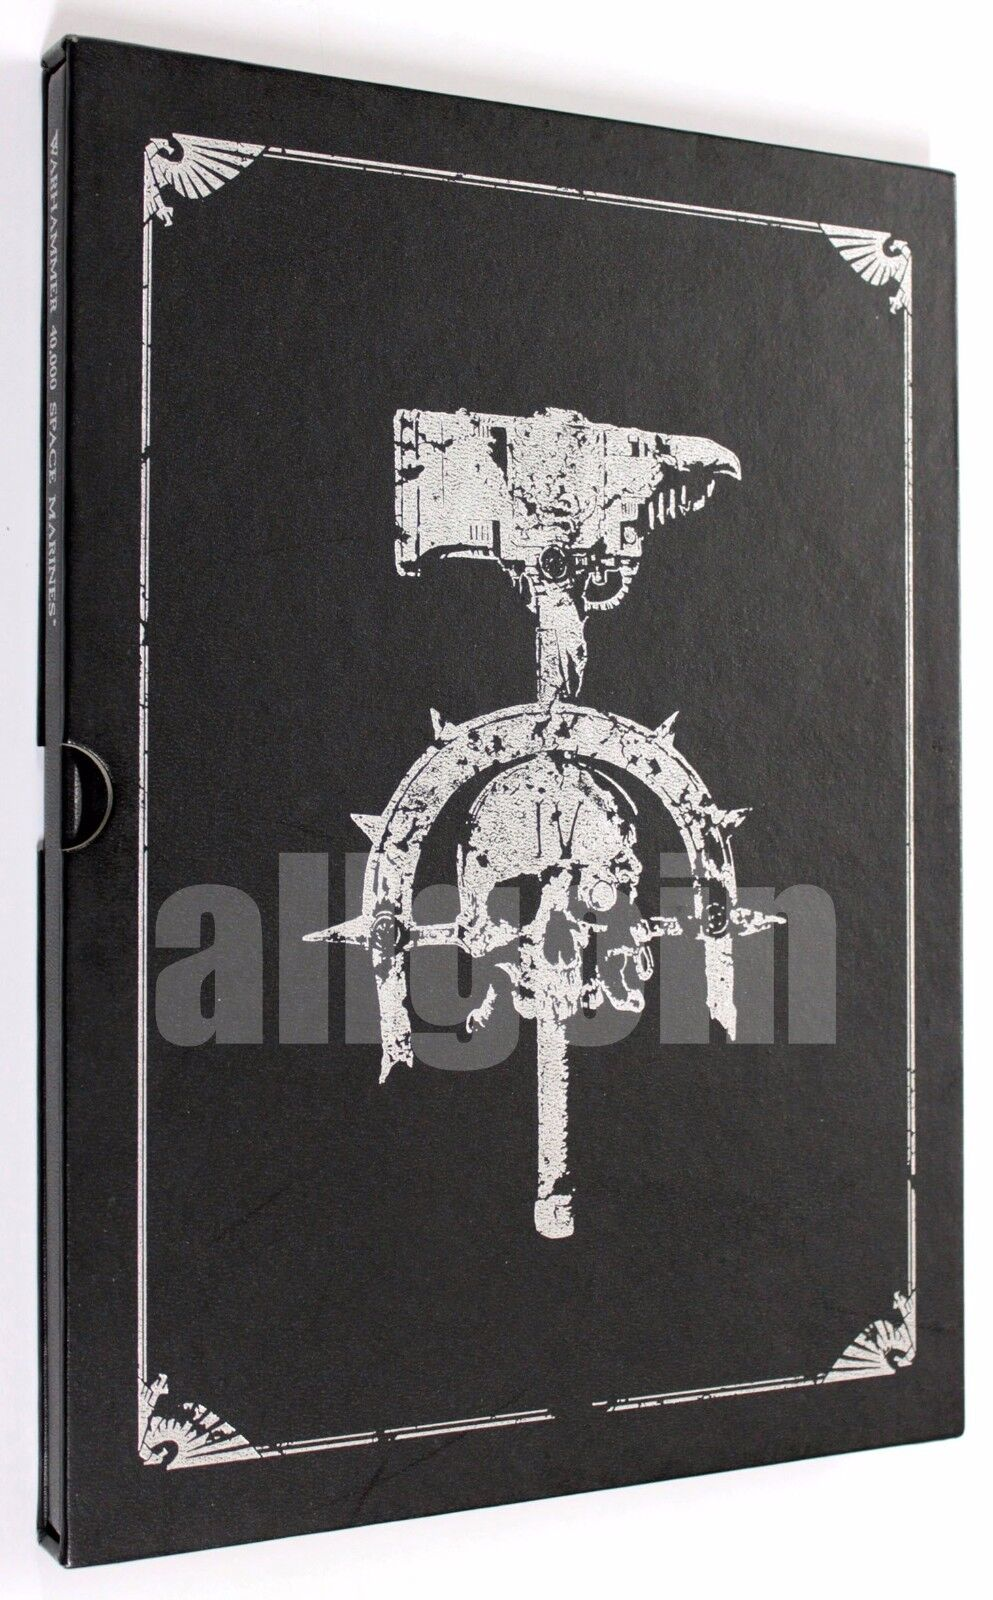 WARHAMMER 40.000 CODEX SPACE MARINES 2005 Deluxe Hardcover Limited Edition RARE